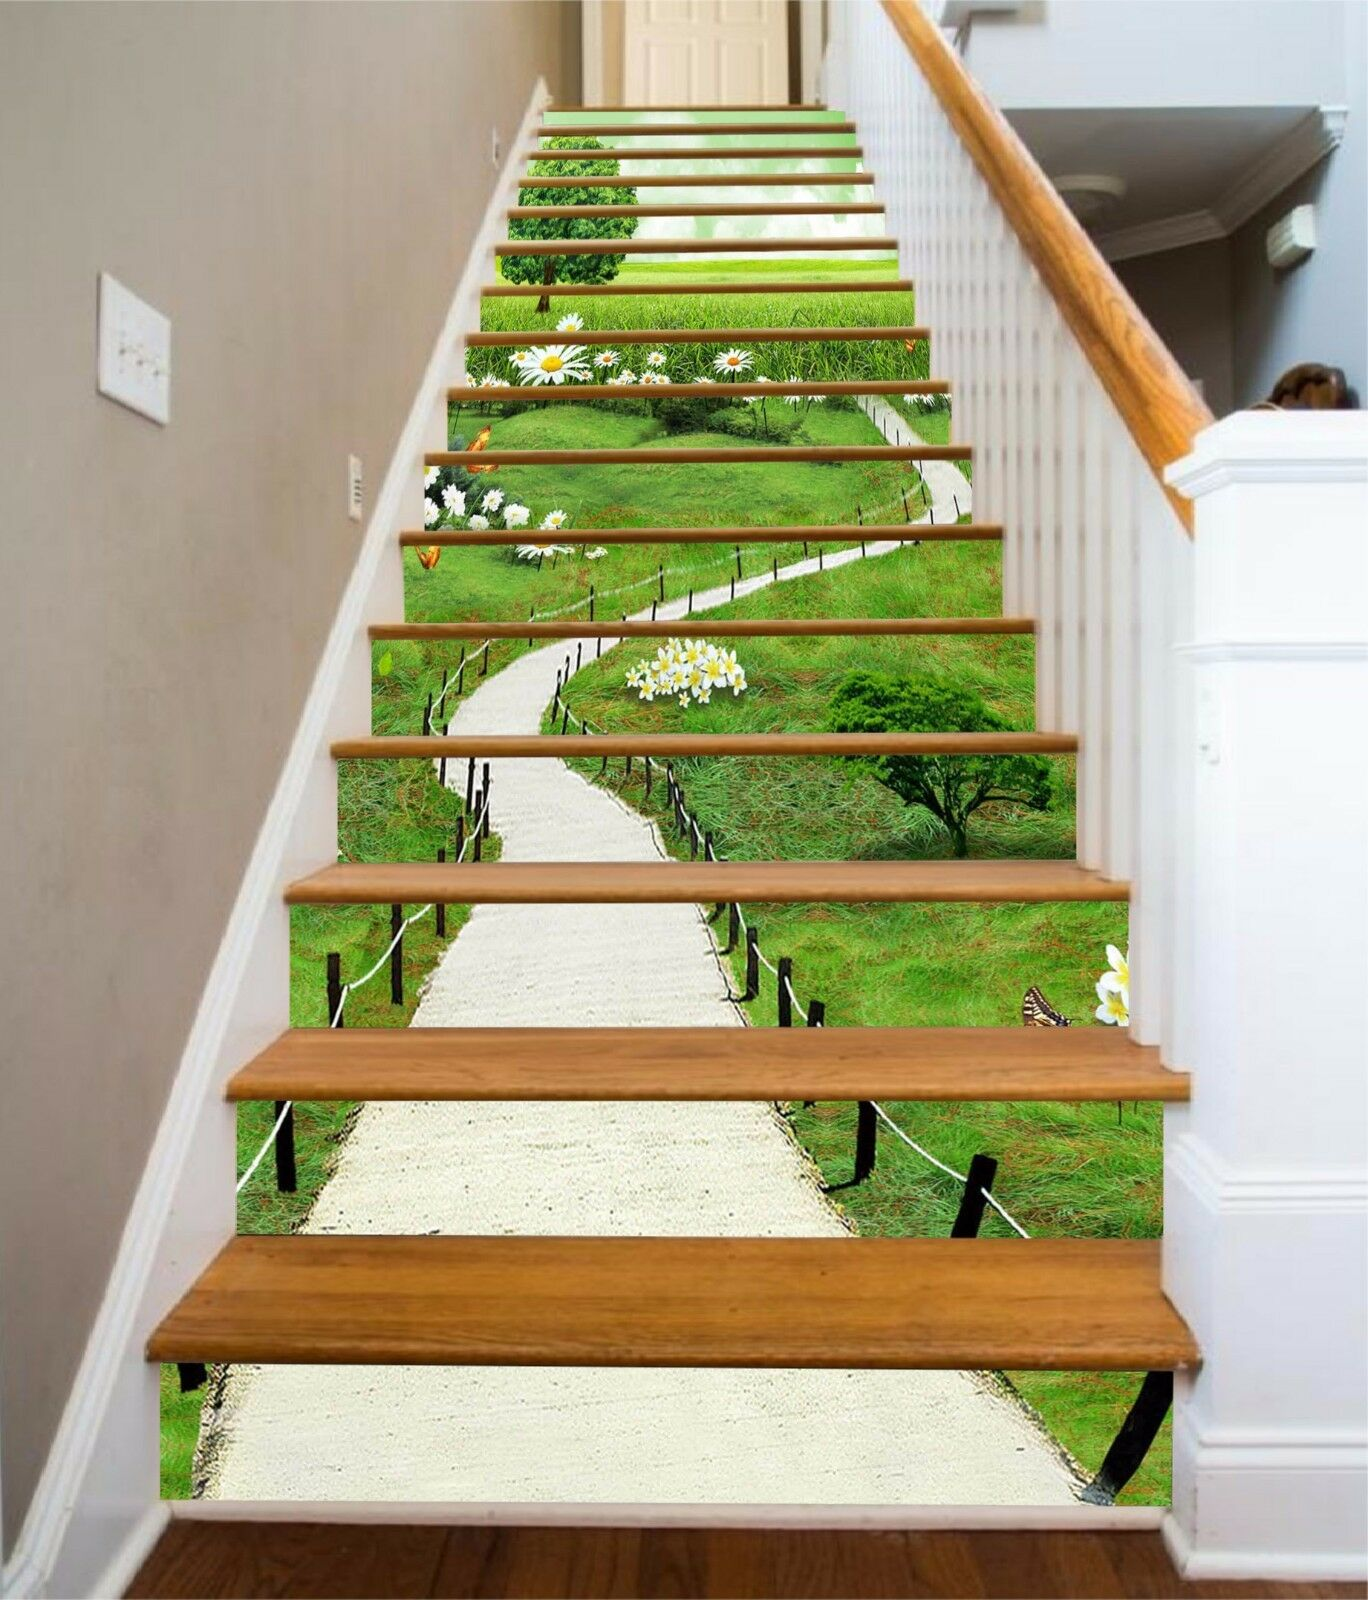 3D Lawn Path 250 Stairs Risers Decoration Photo Mural Vinyl Decal Wallpaper US